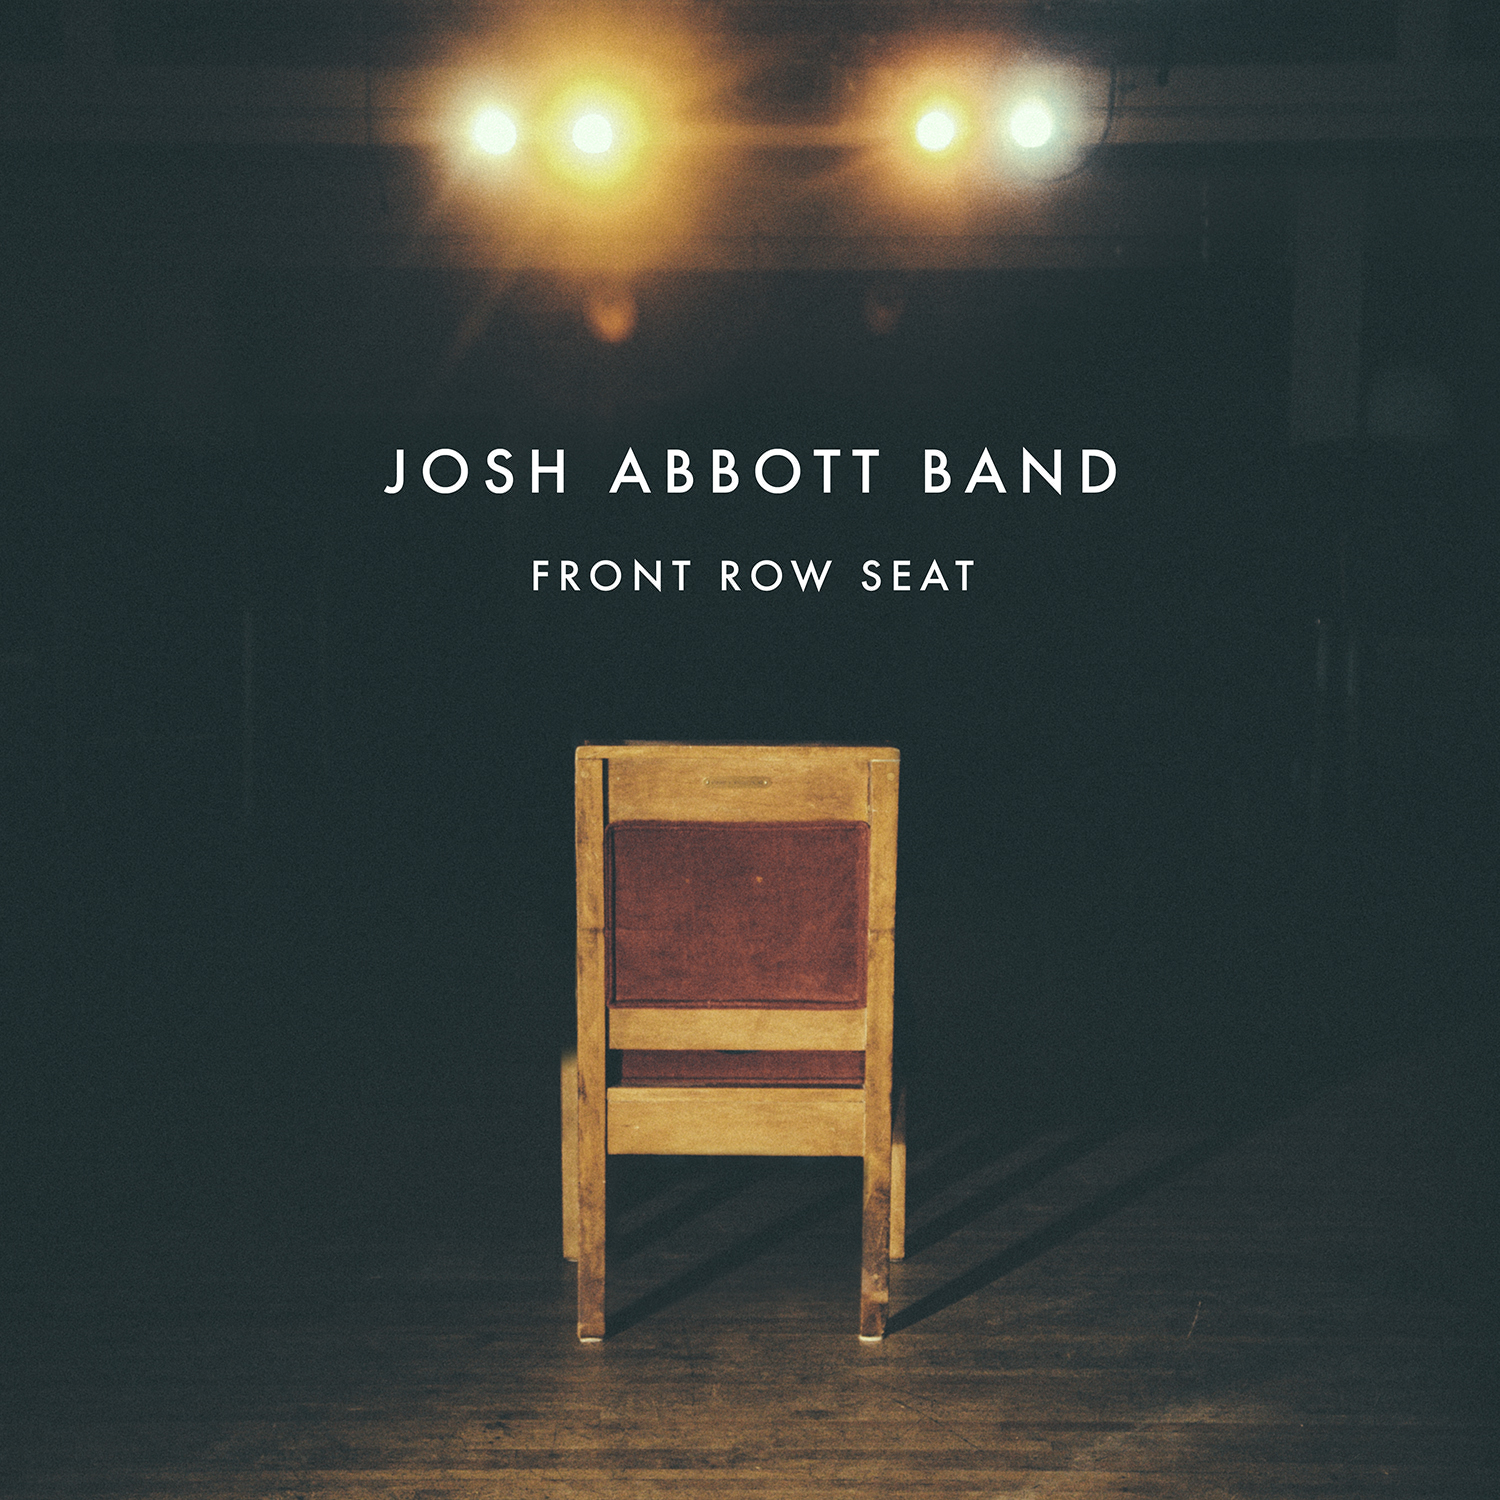 The Josh Abbott Band Tour